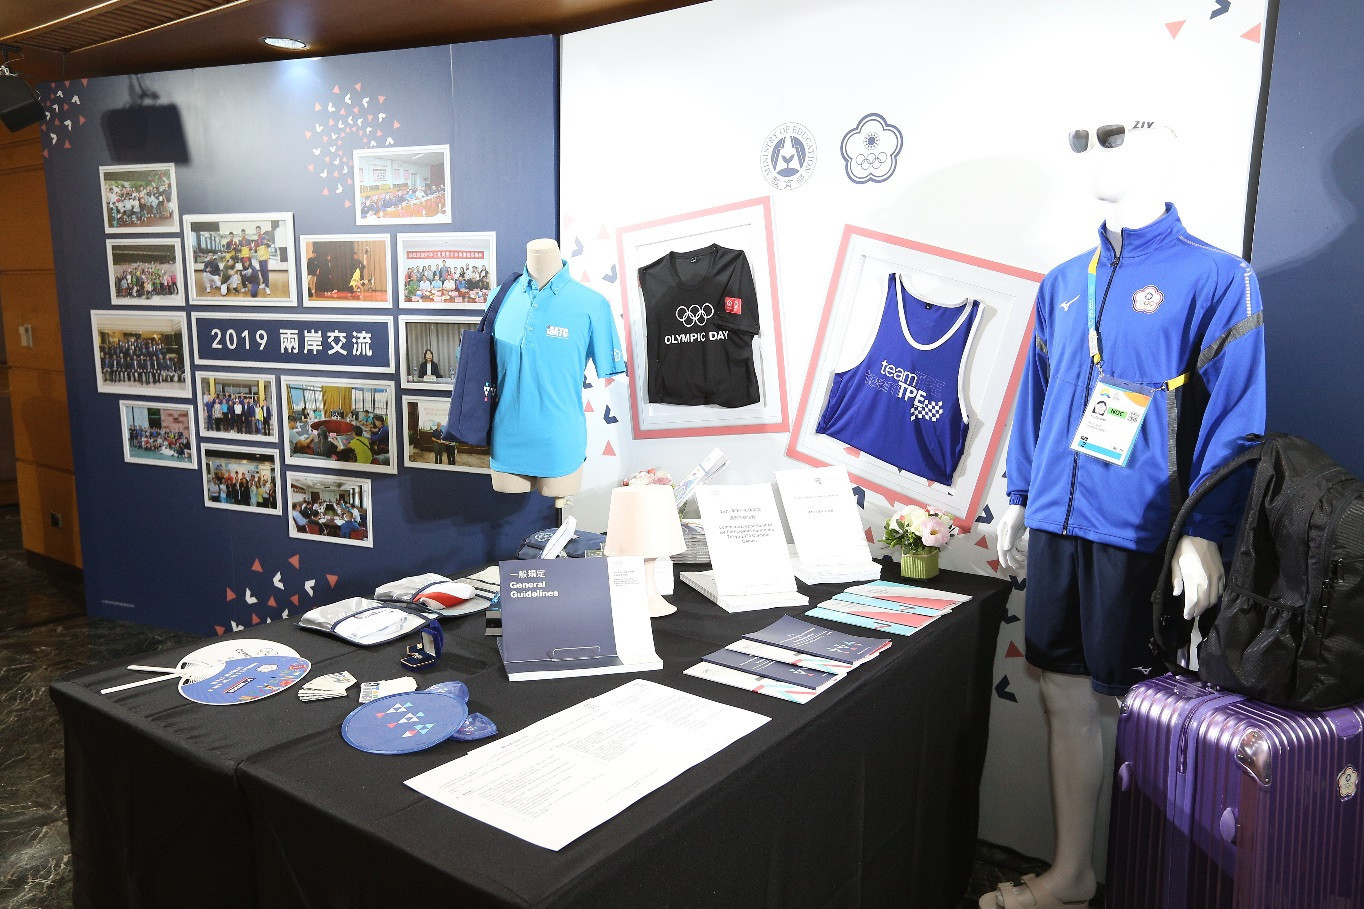 The Chinese Taipei Olympic Committee has held an exhibition to mark some of its achievements during 2019 ©CTOC